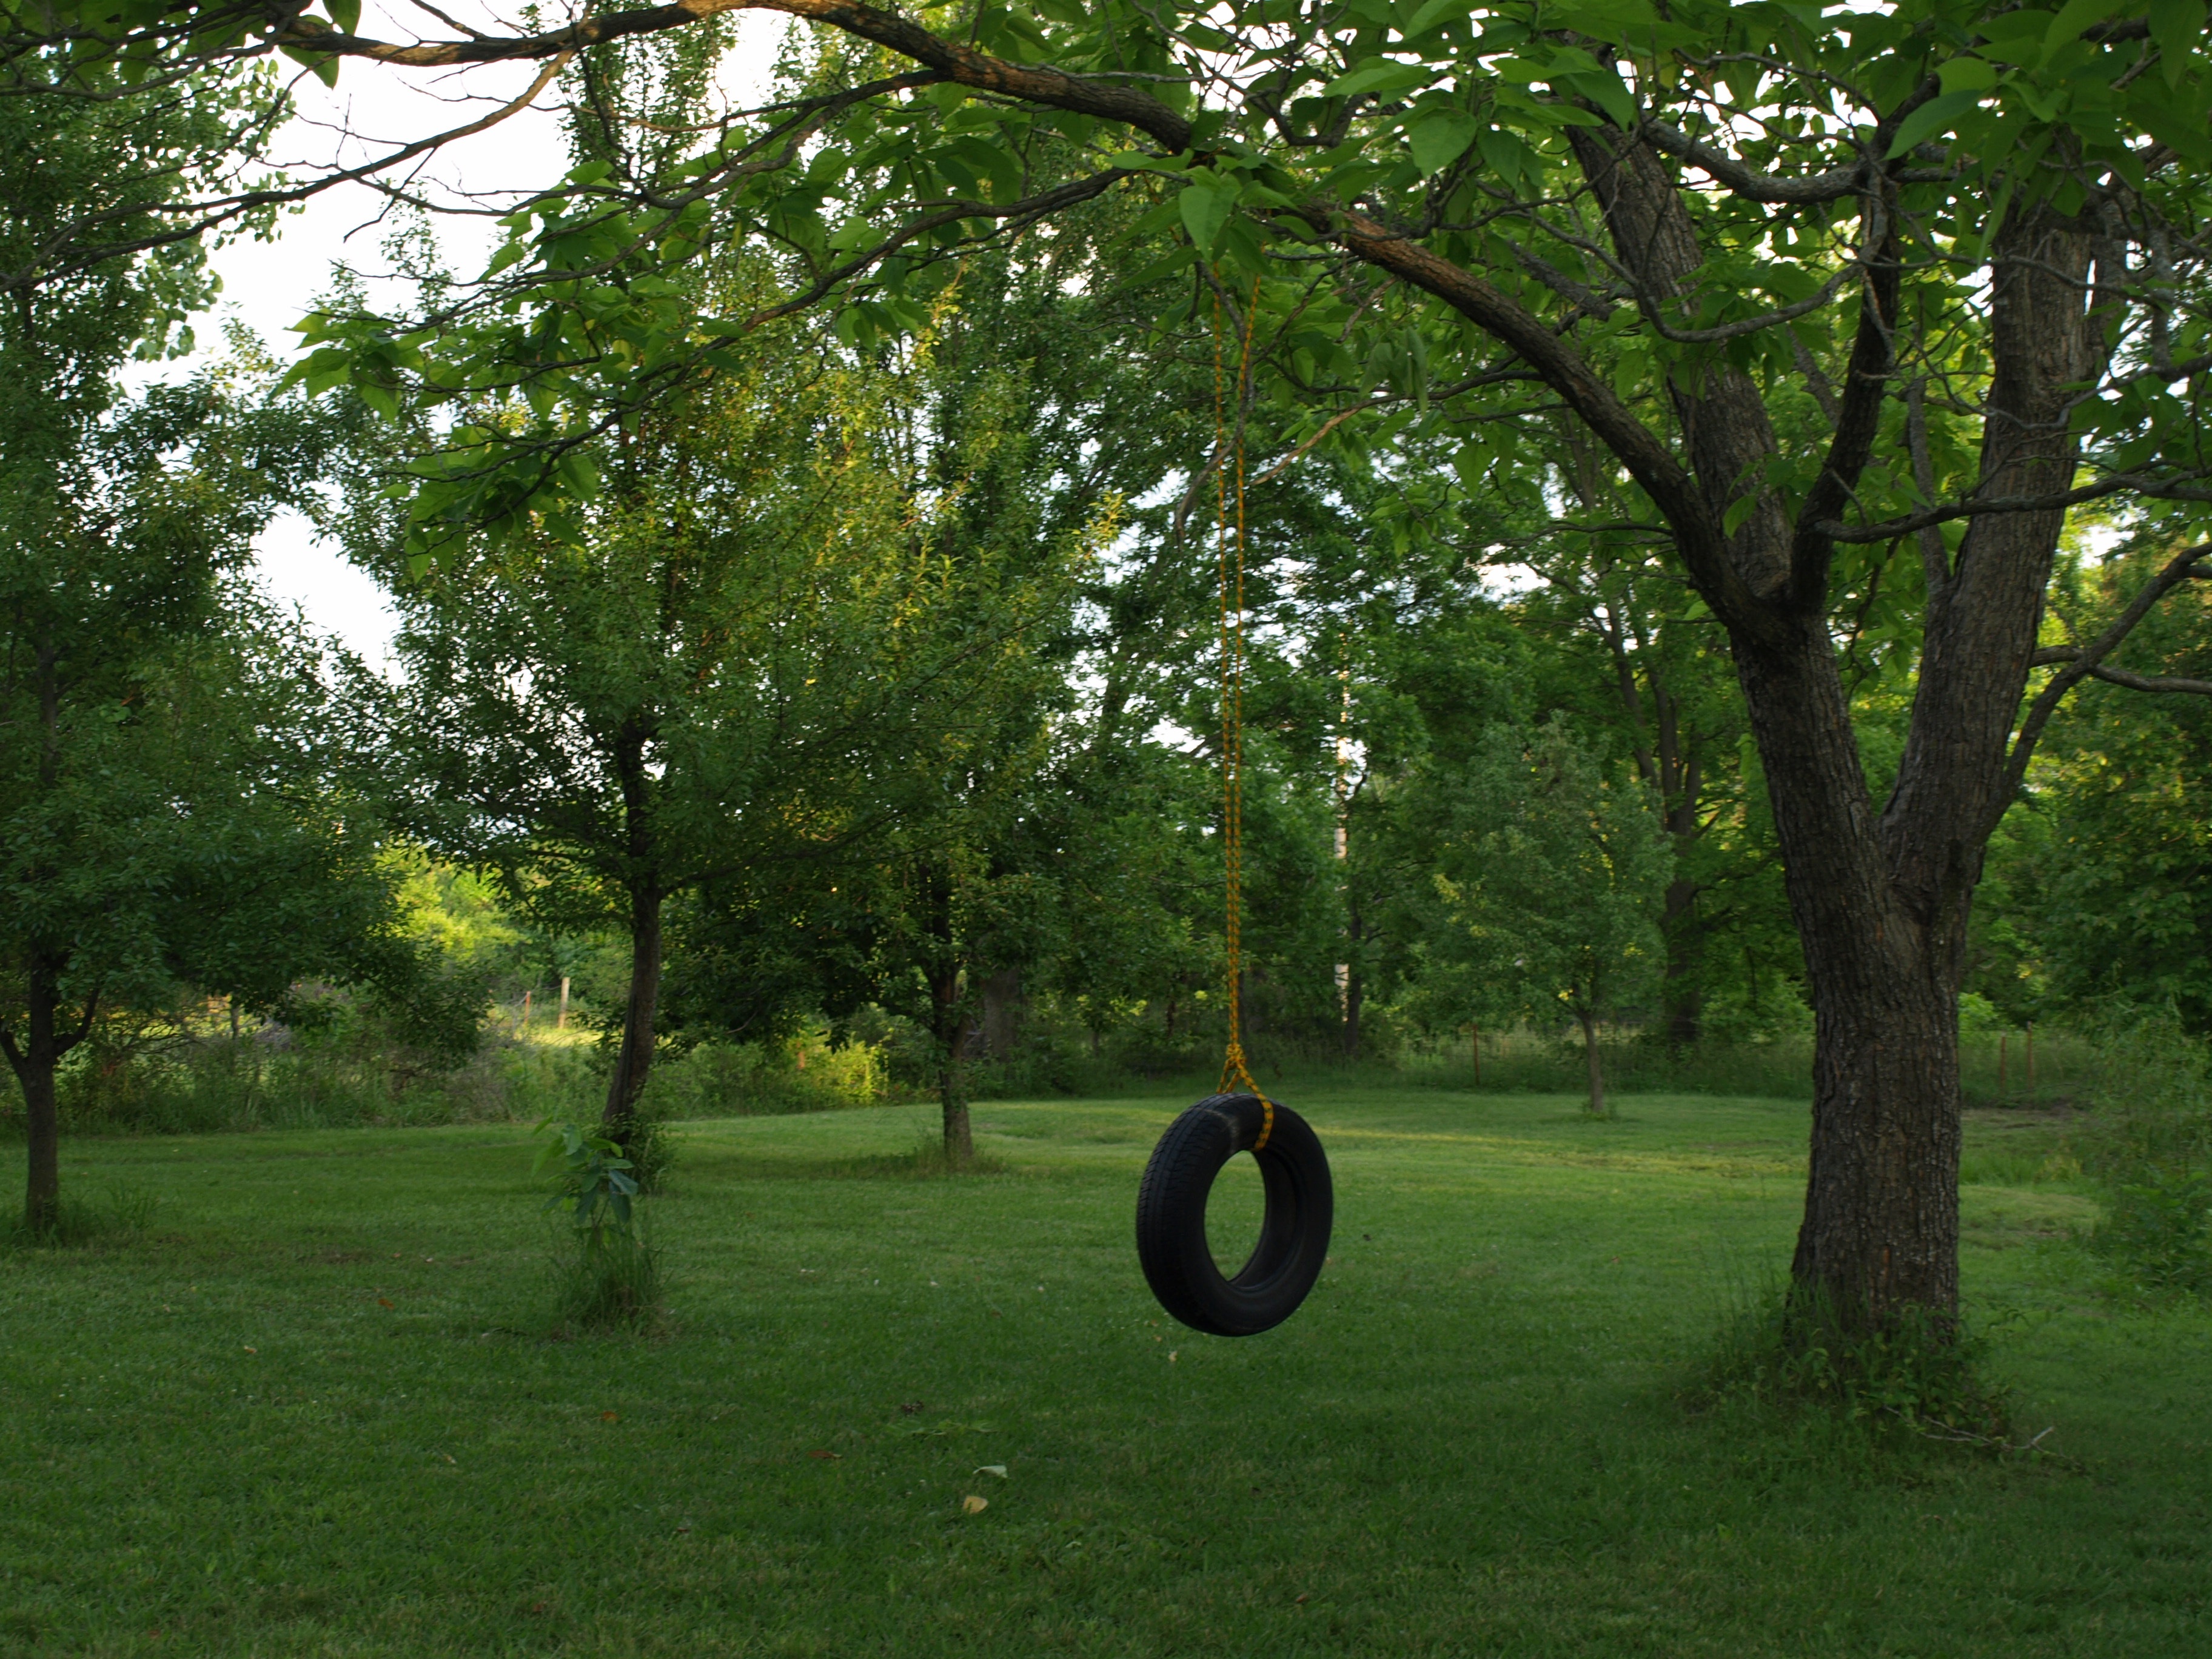 Merveilleux Farm Photou0027s Page » Old Fashioned Tire Swing